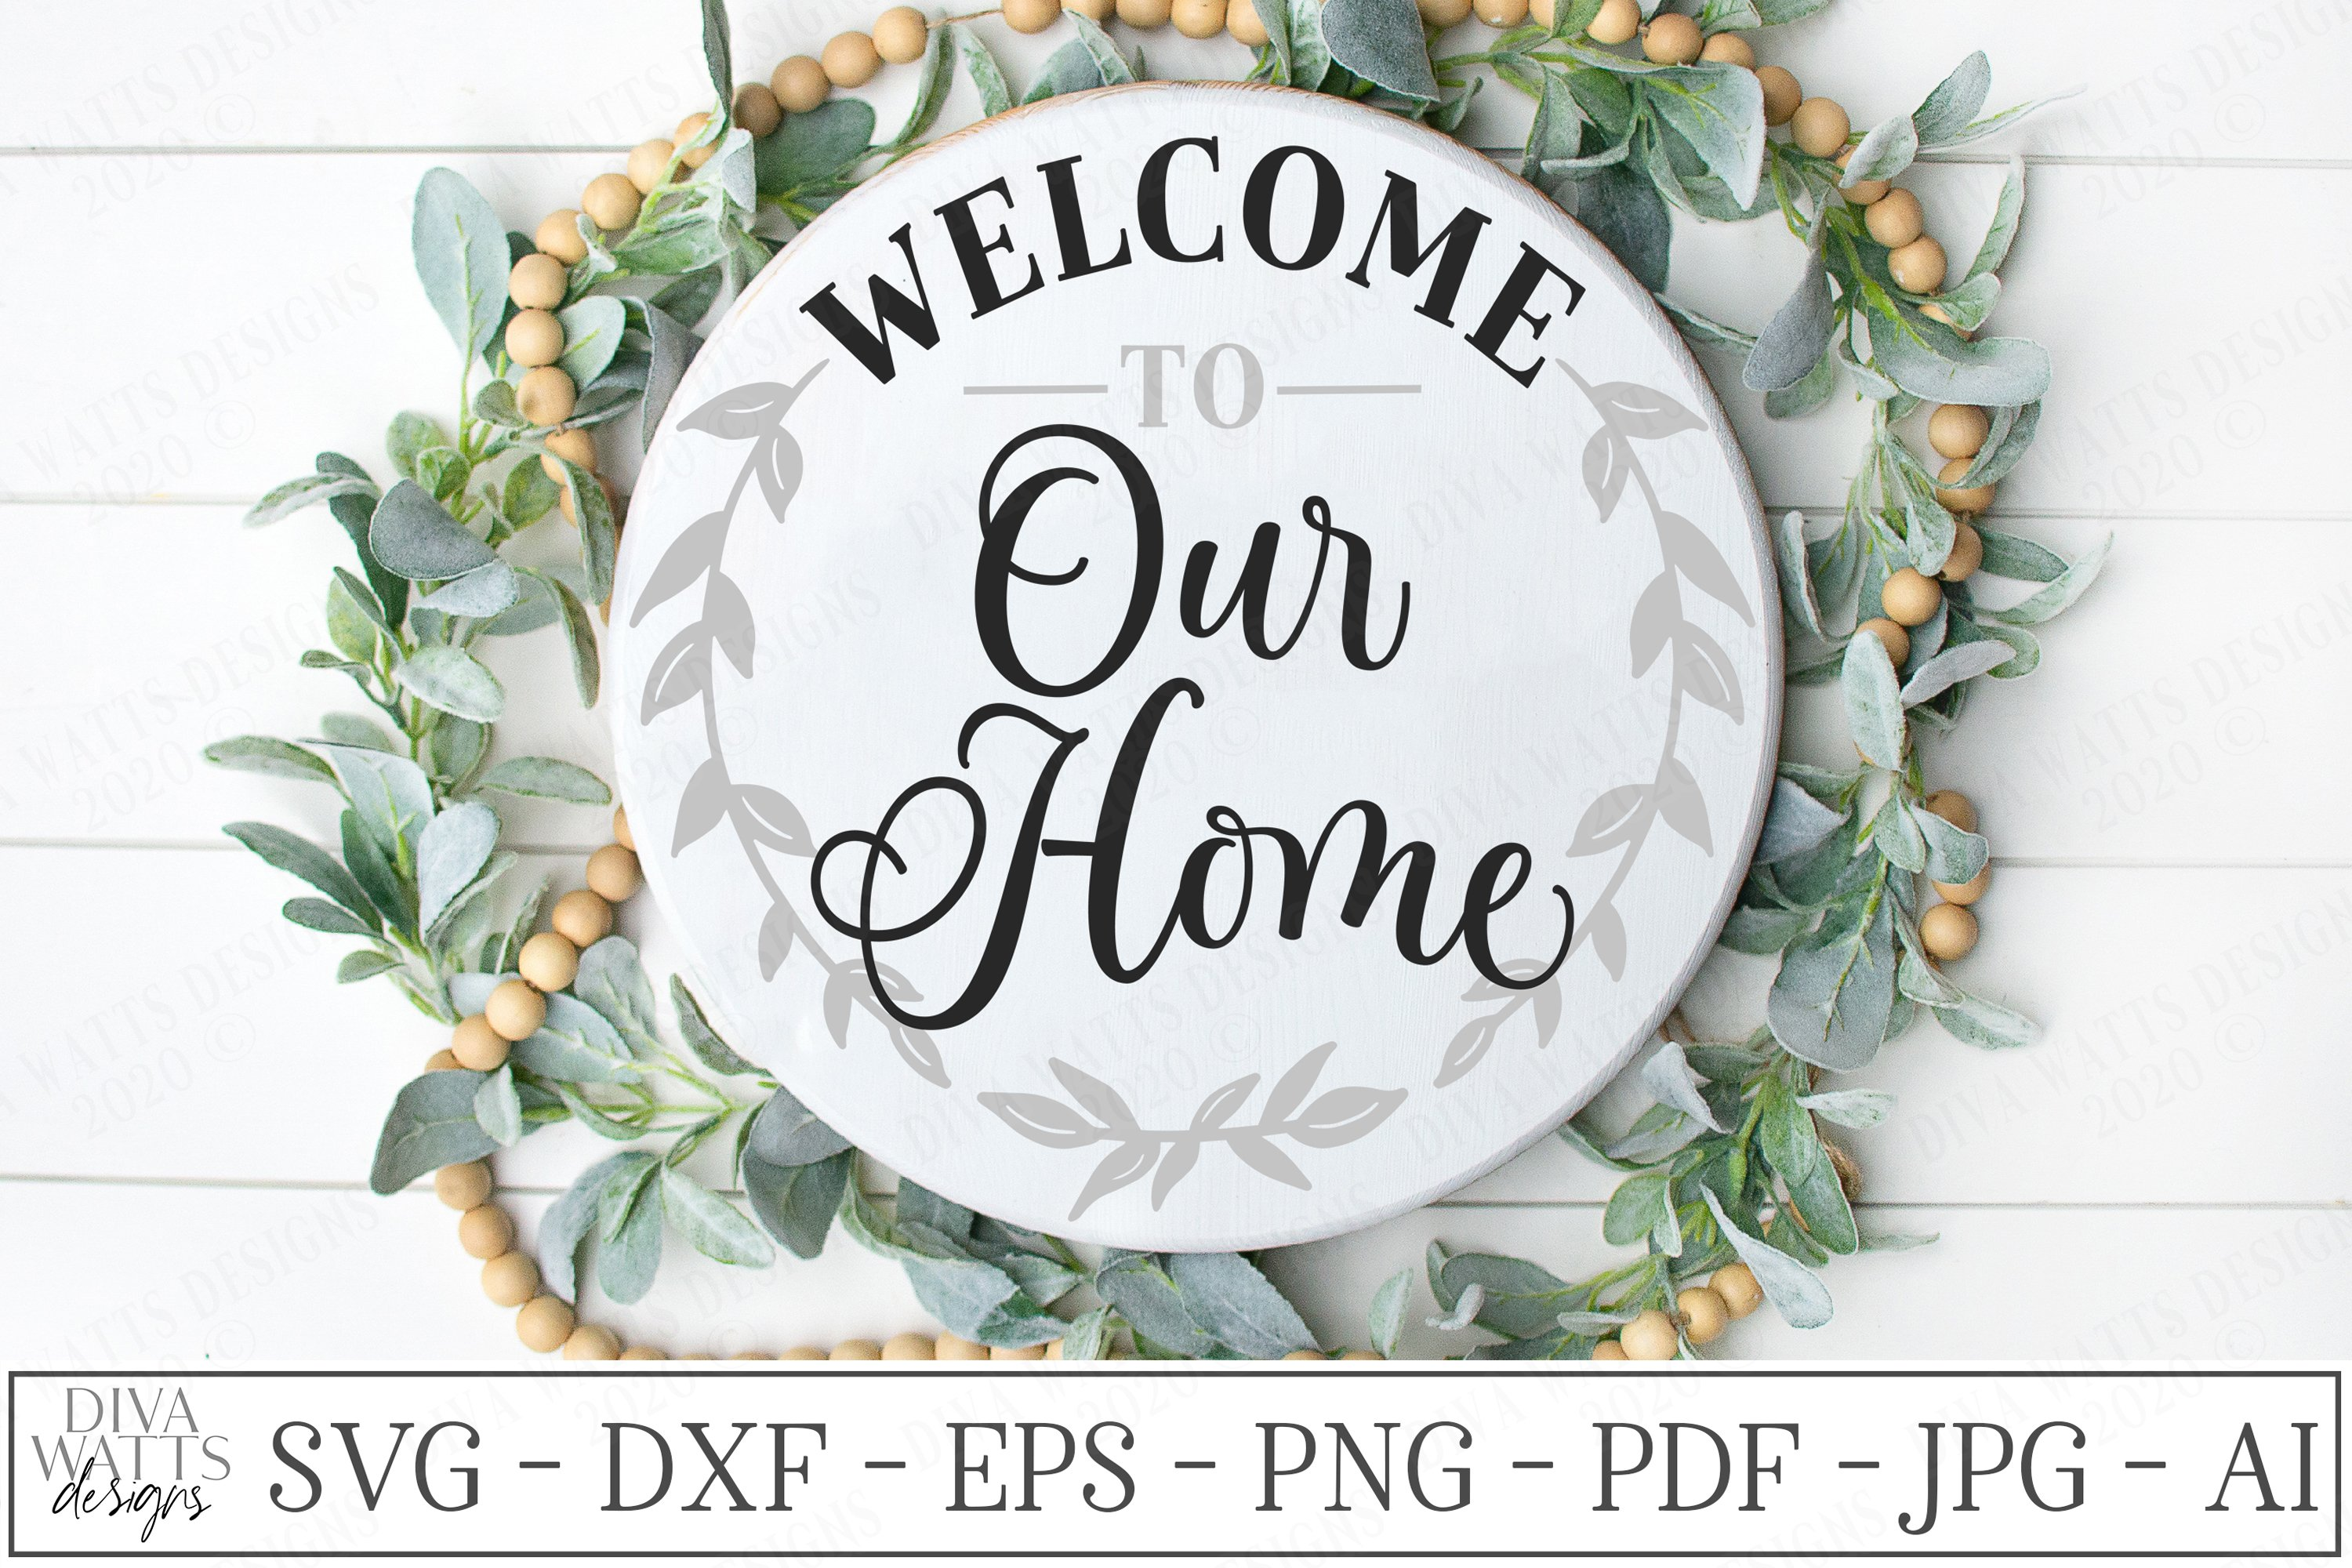 Welcome To Our Home Farmhouse Wreath Svg Dxf Round Sign 510994 Svgs Design Bundles